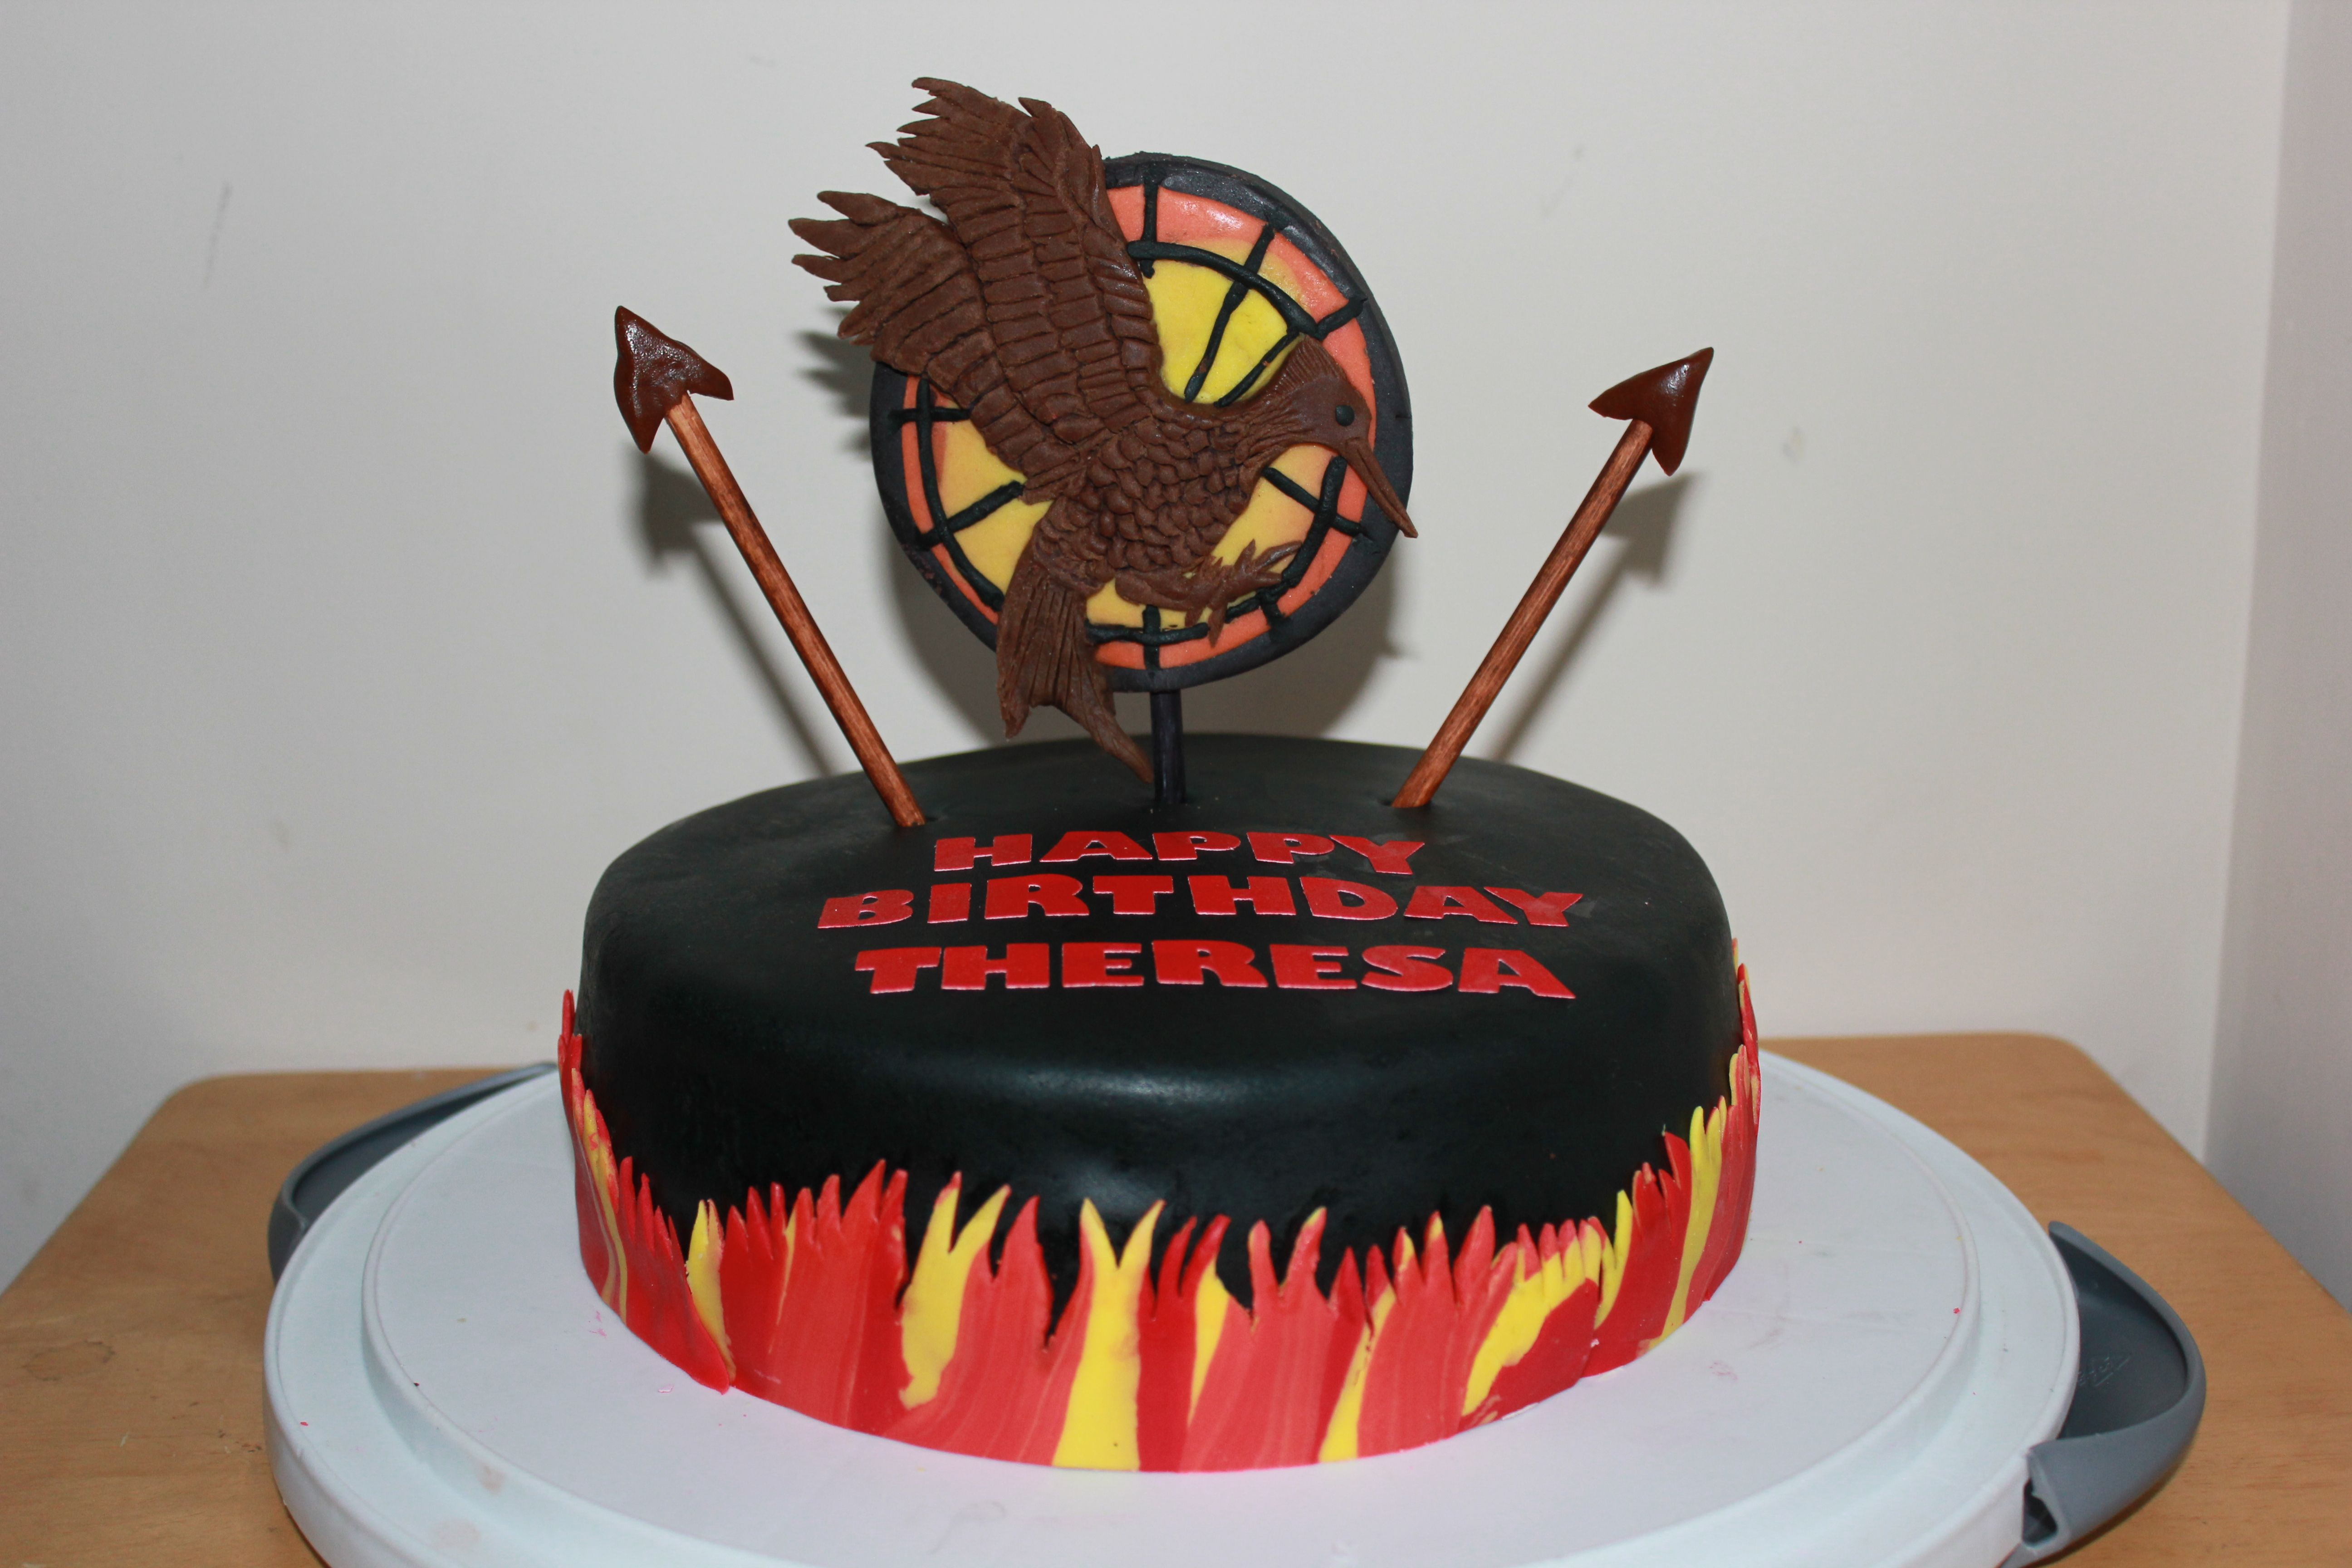 Theresas 14th Birthday Cake Catching Fire Theme From The Hunger